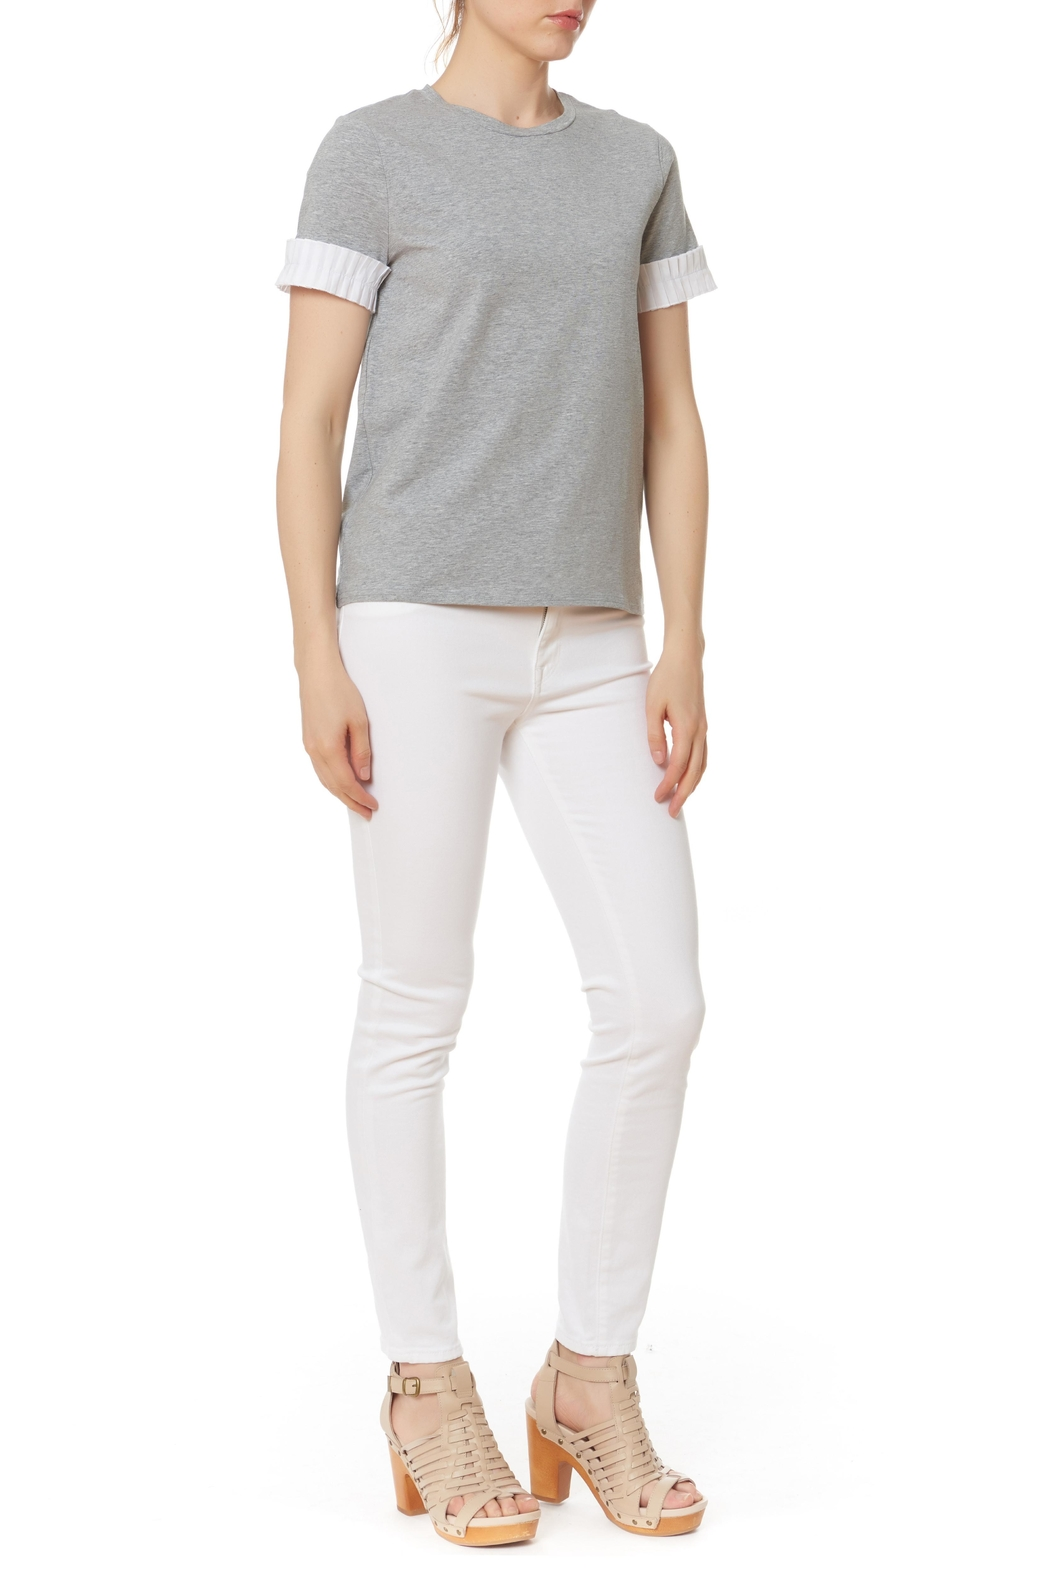 After Market Pleat Cuff Top - Main Image